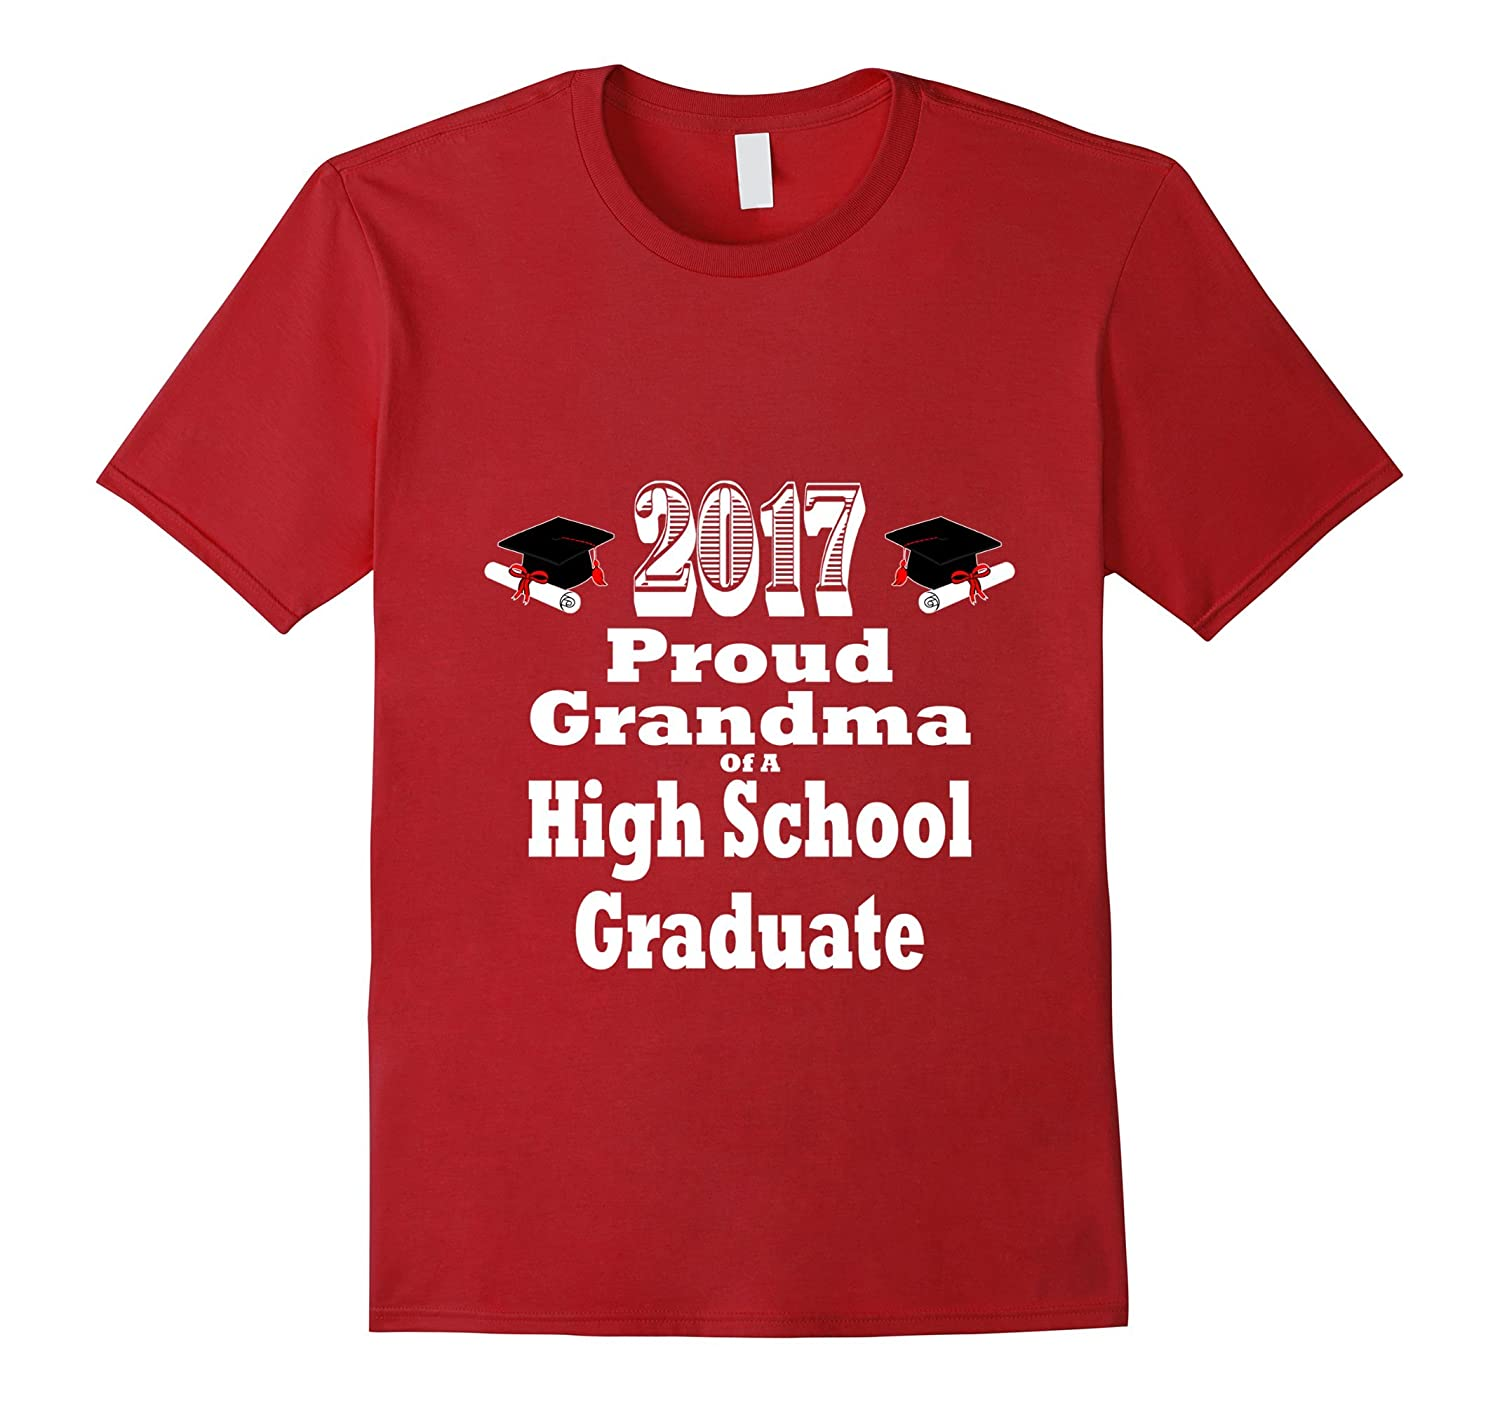 2017 High School Graduation Tshirt Proud Grandma Graduate-TH